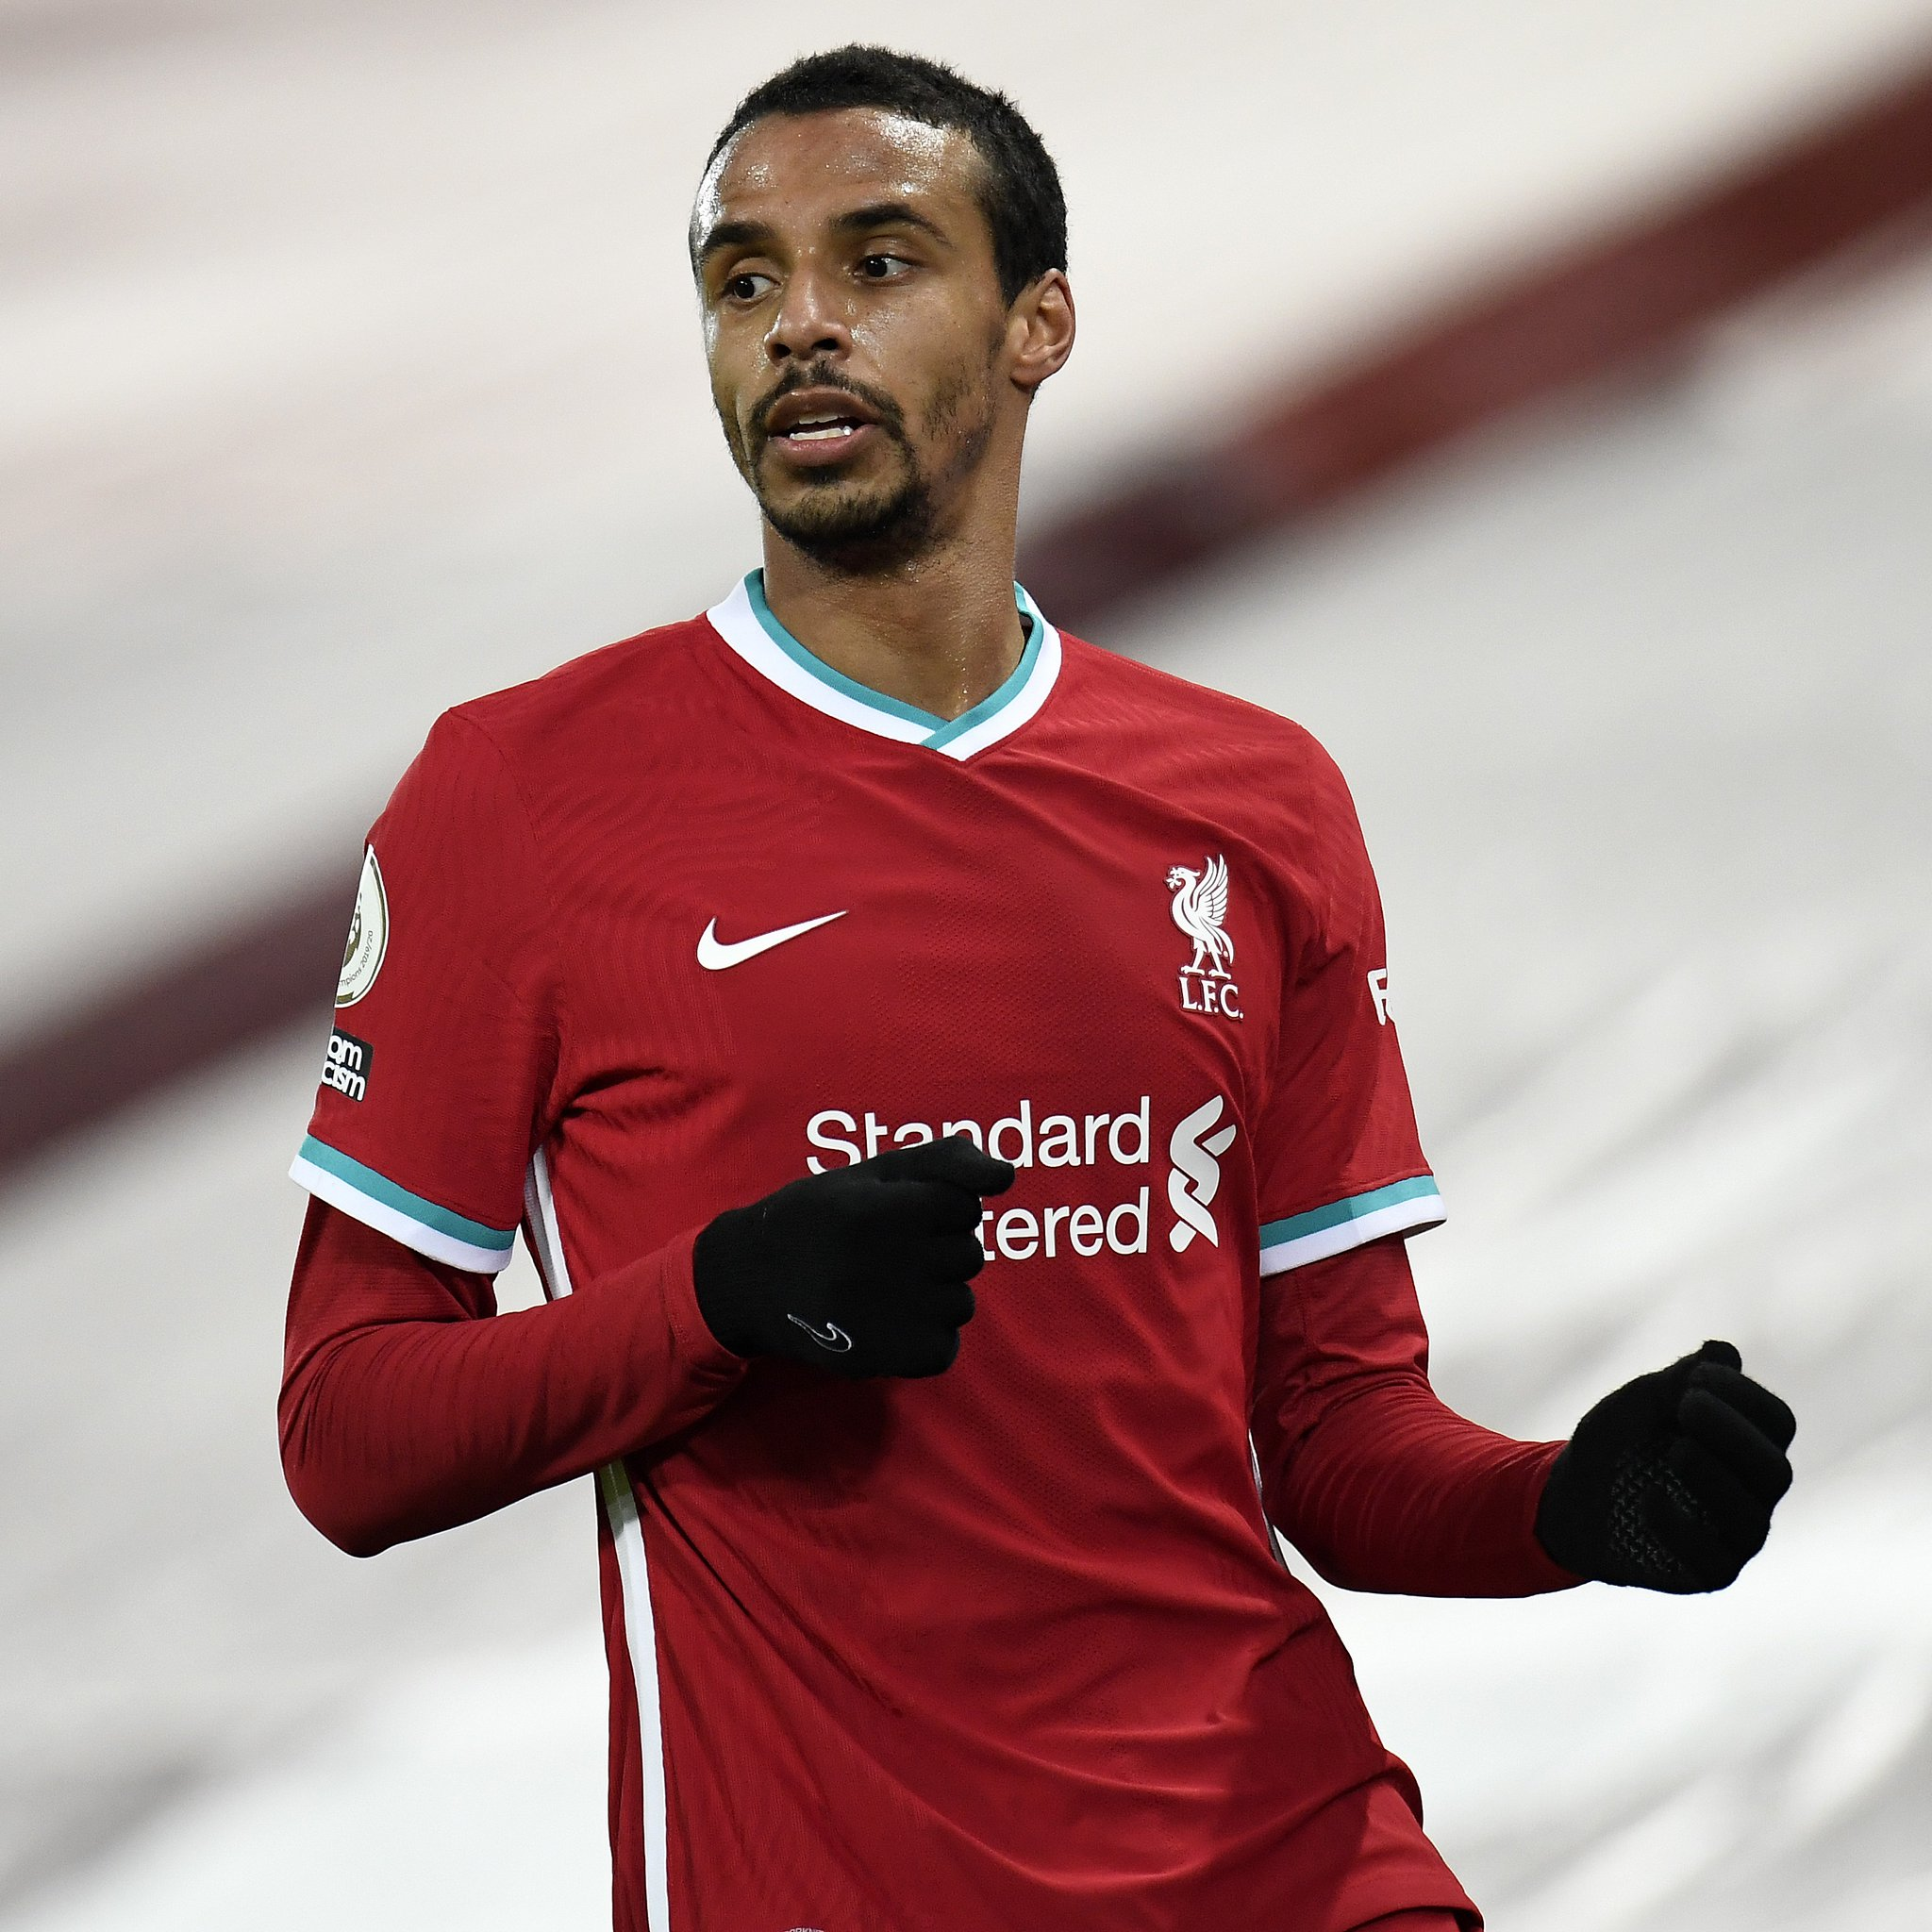 Liverpool Defender Matip Out Of Season With Ankle Injury